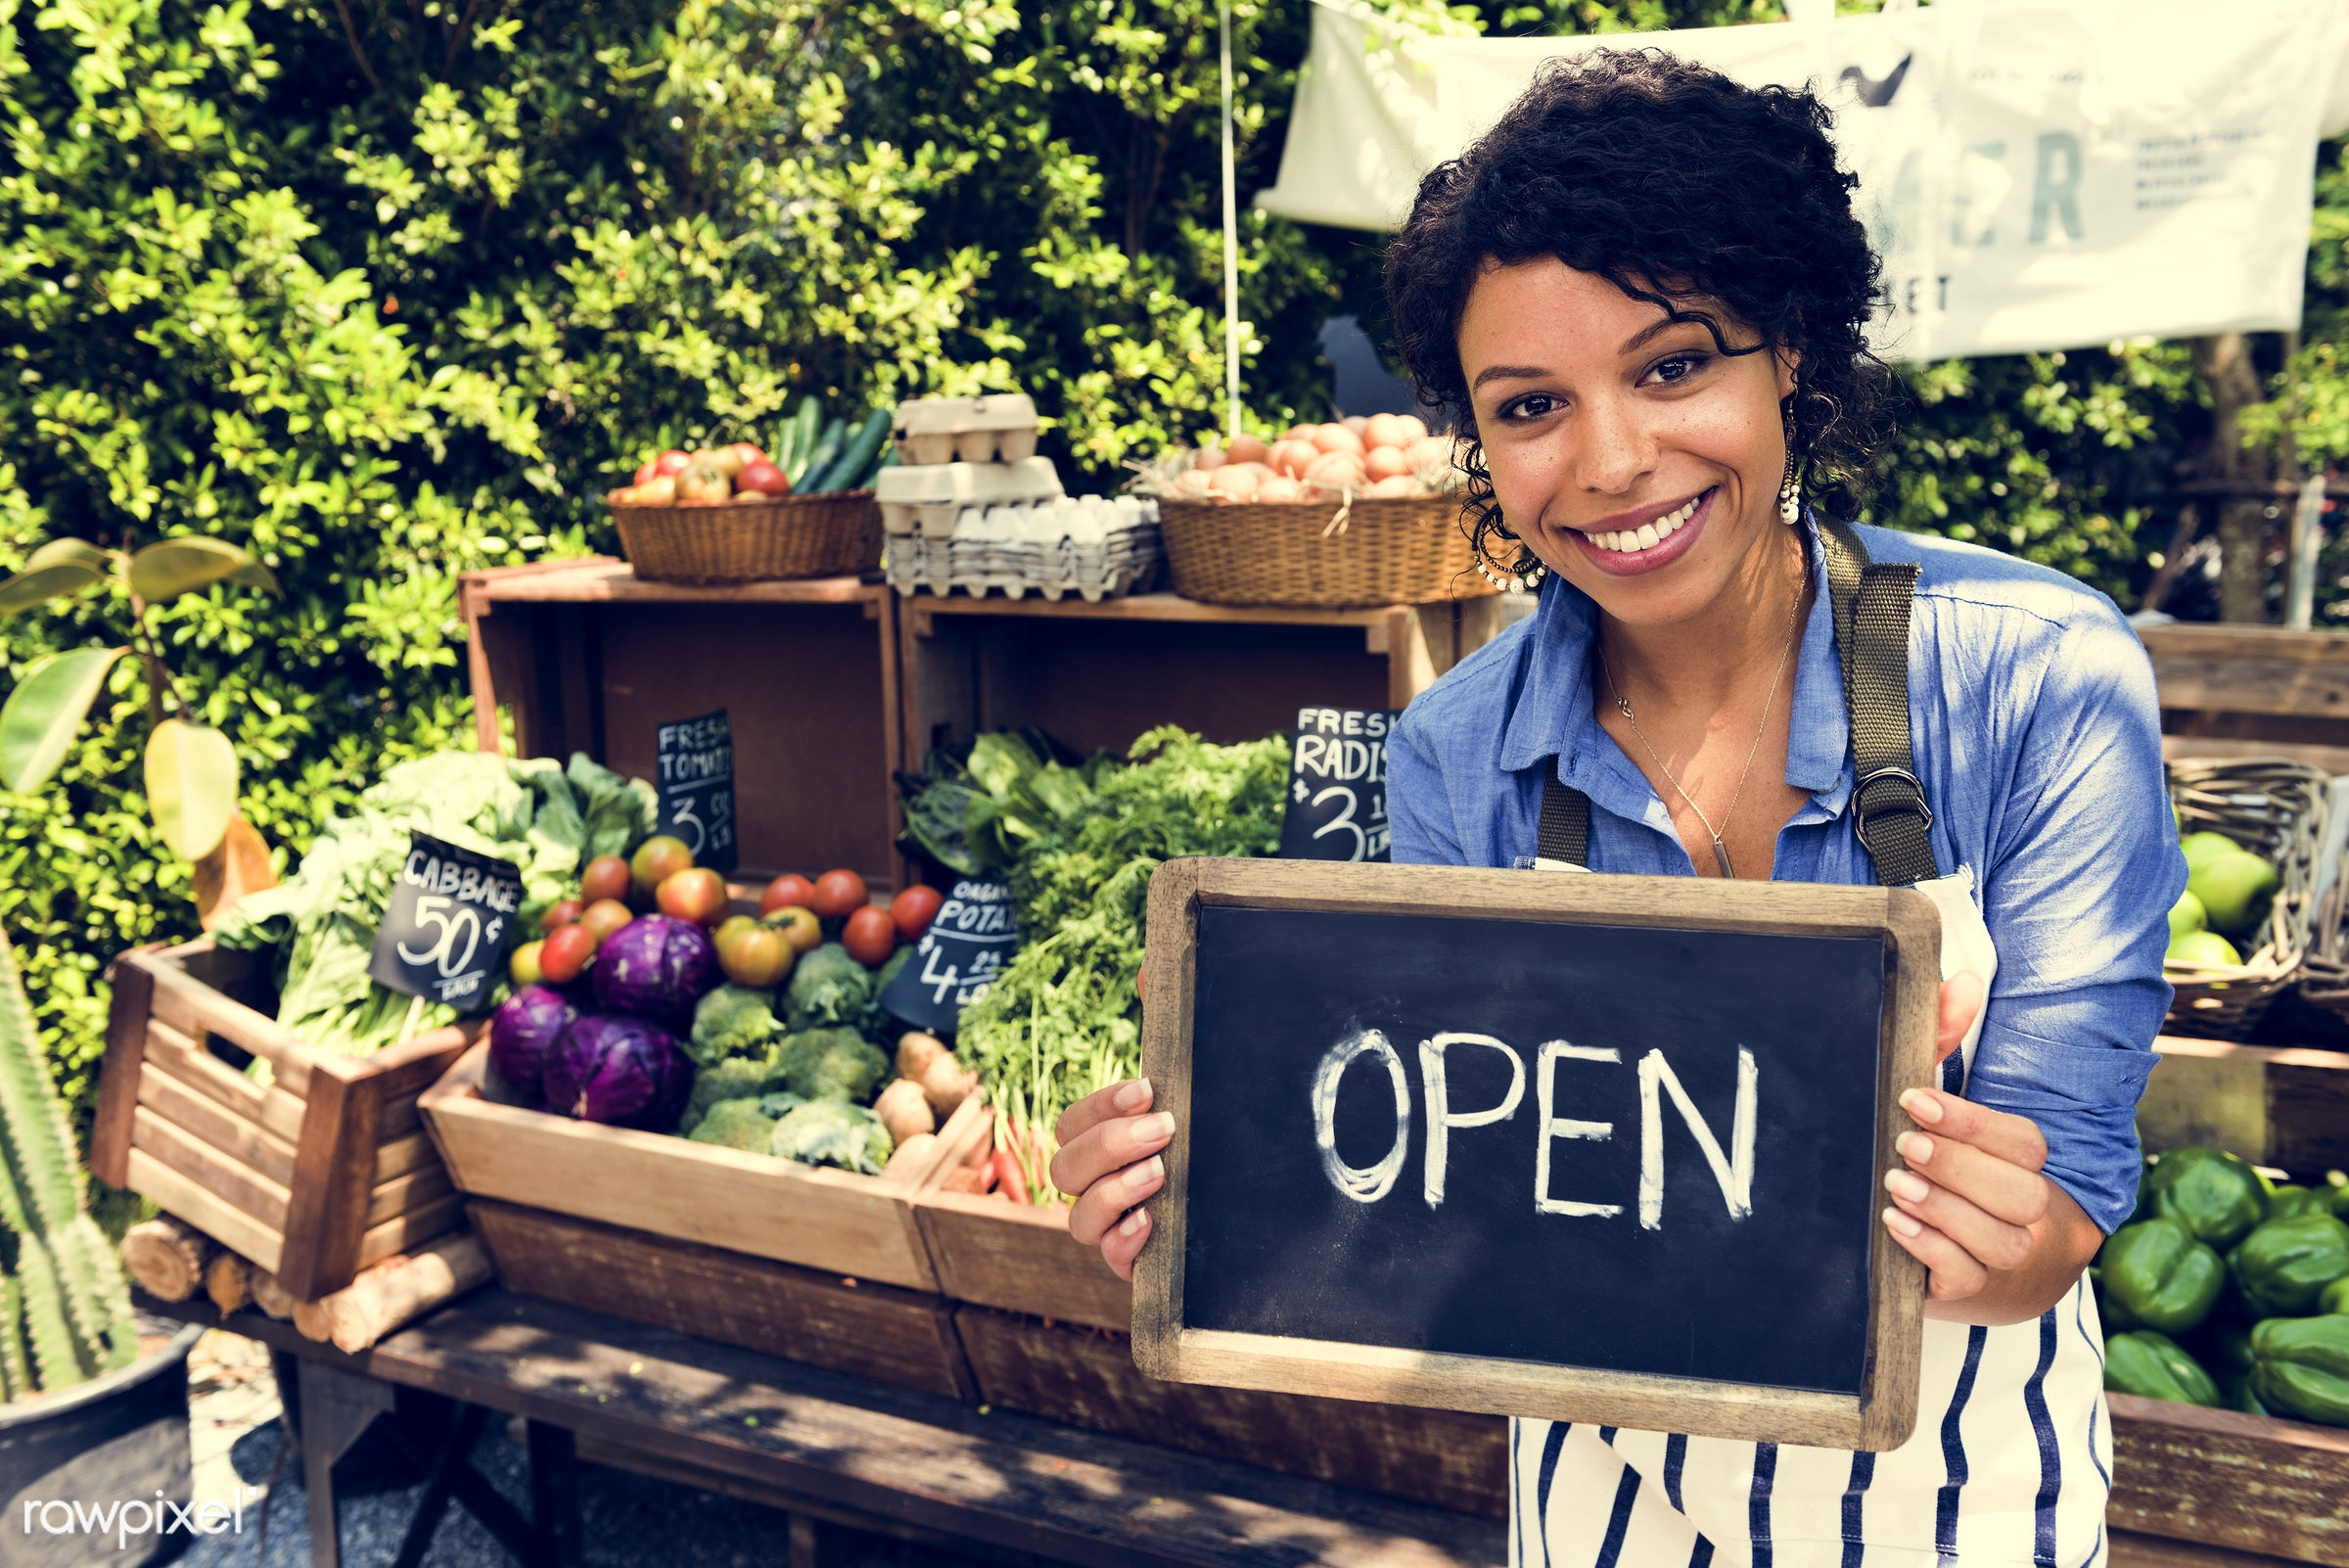 shop, person, stall, people, open, farmer, woman, choosing, choose, consumers, display, sign, nutrition, eggs, market, price...